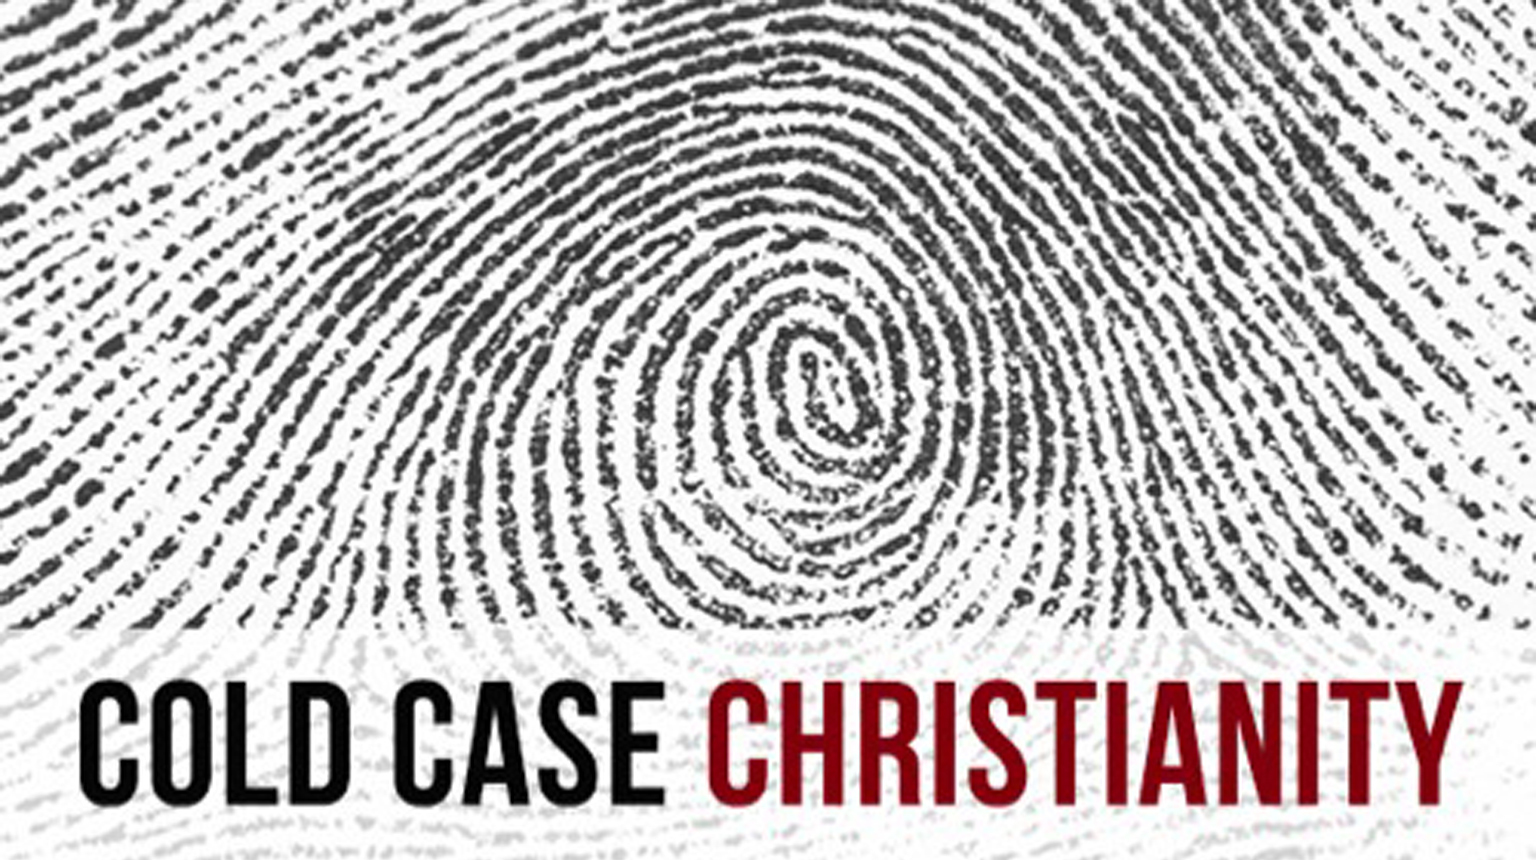 You Can Believe Because of the Evidence, Not in Spite of It – A Review of Cold Case Christianity